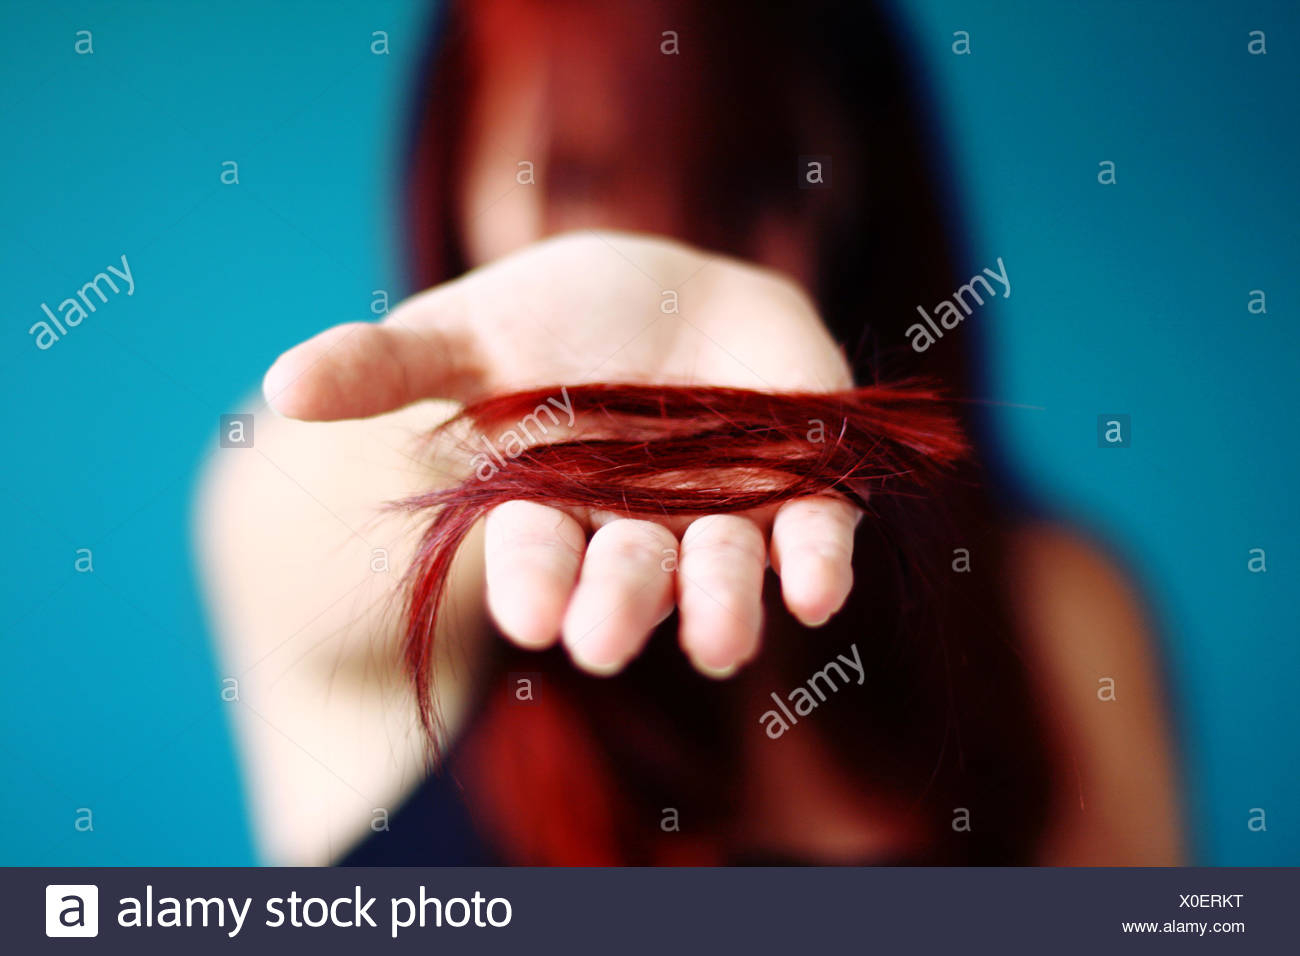 Young woman holding cut off hair - Stock Image